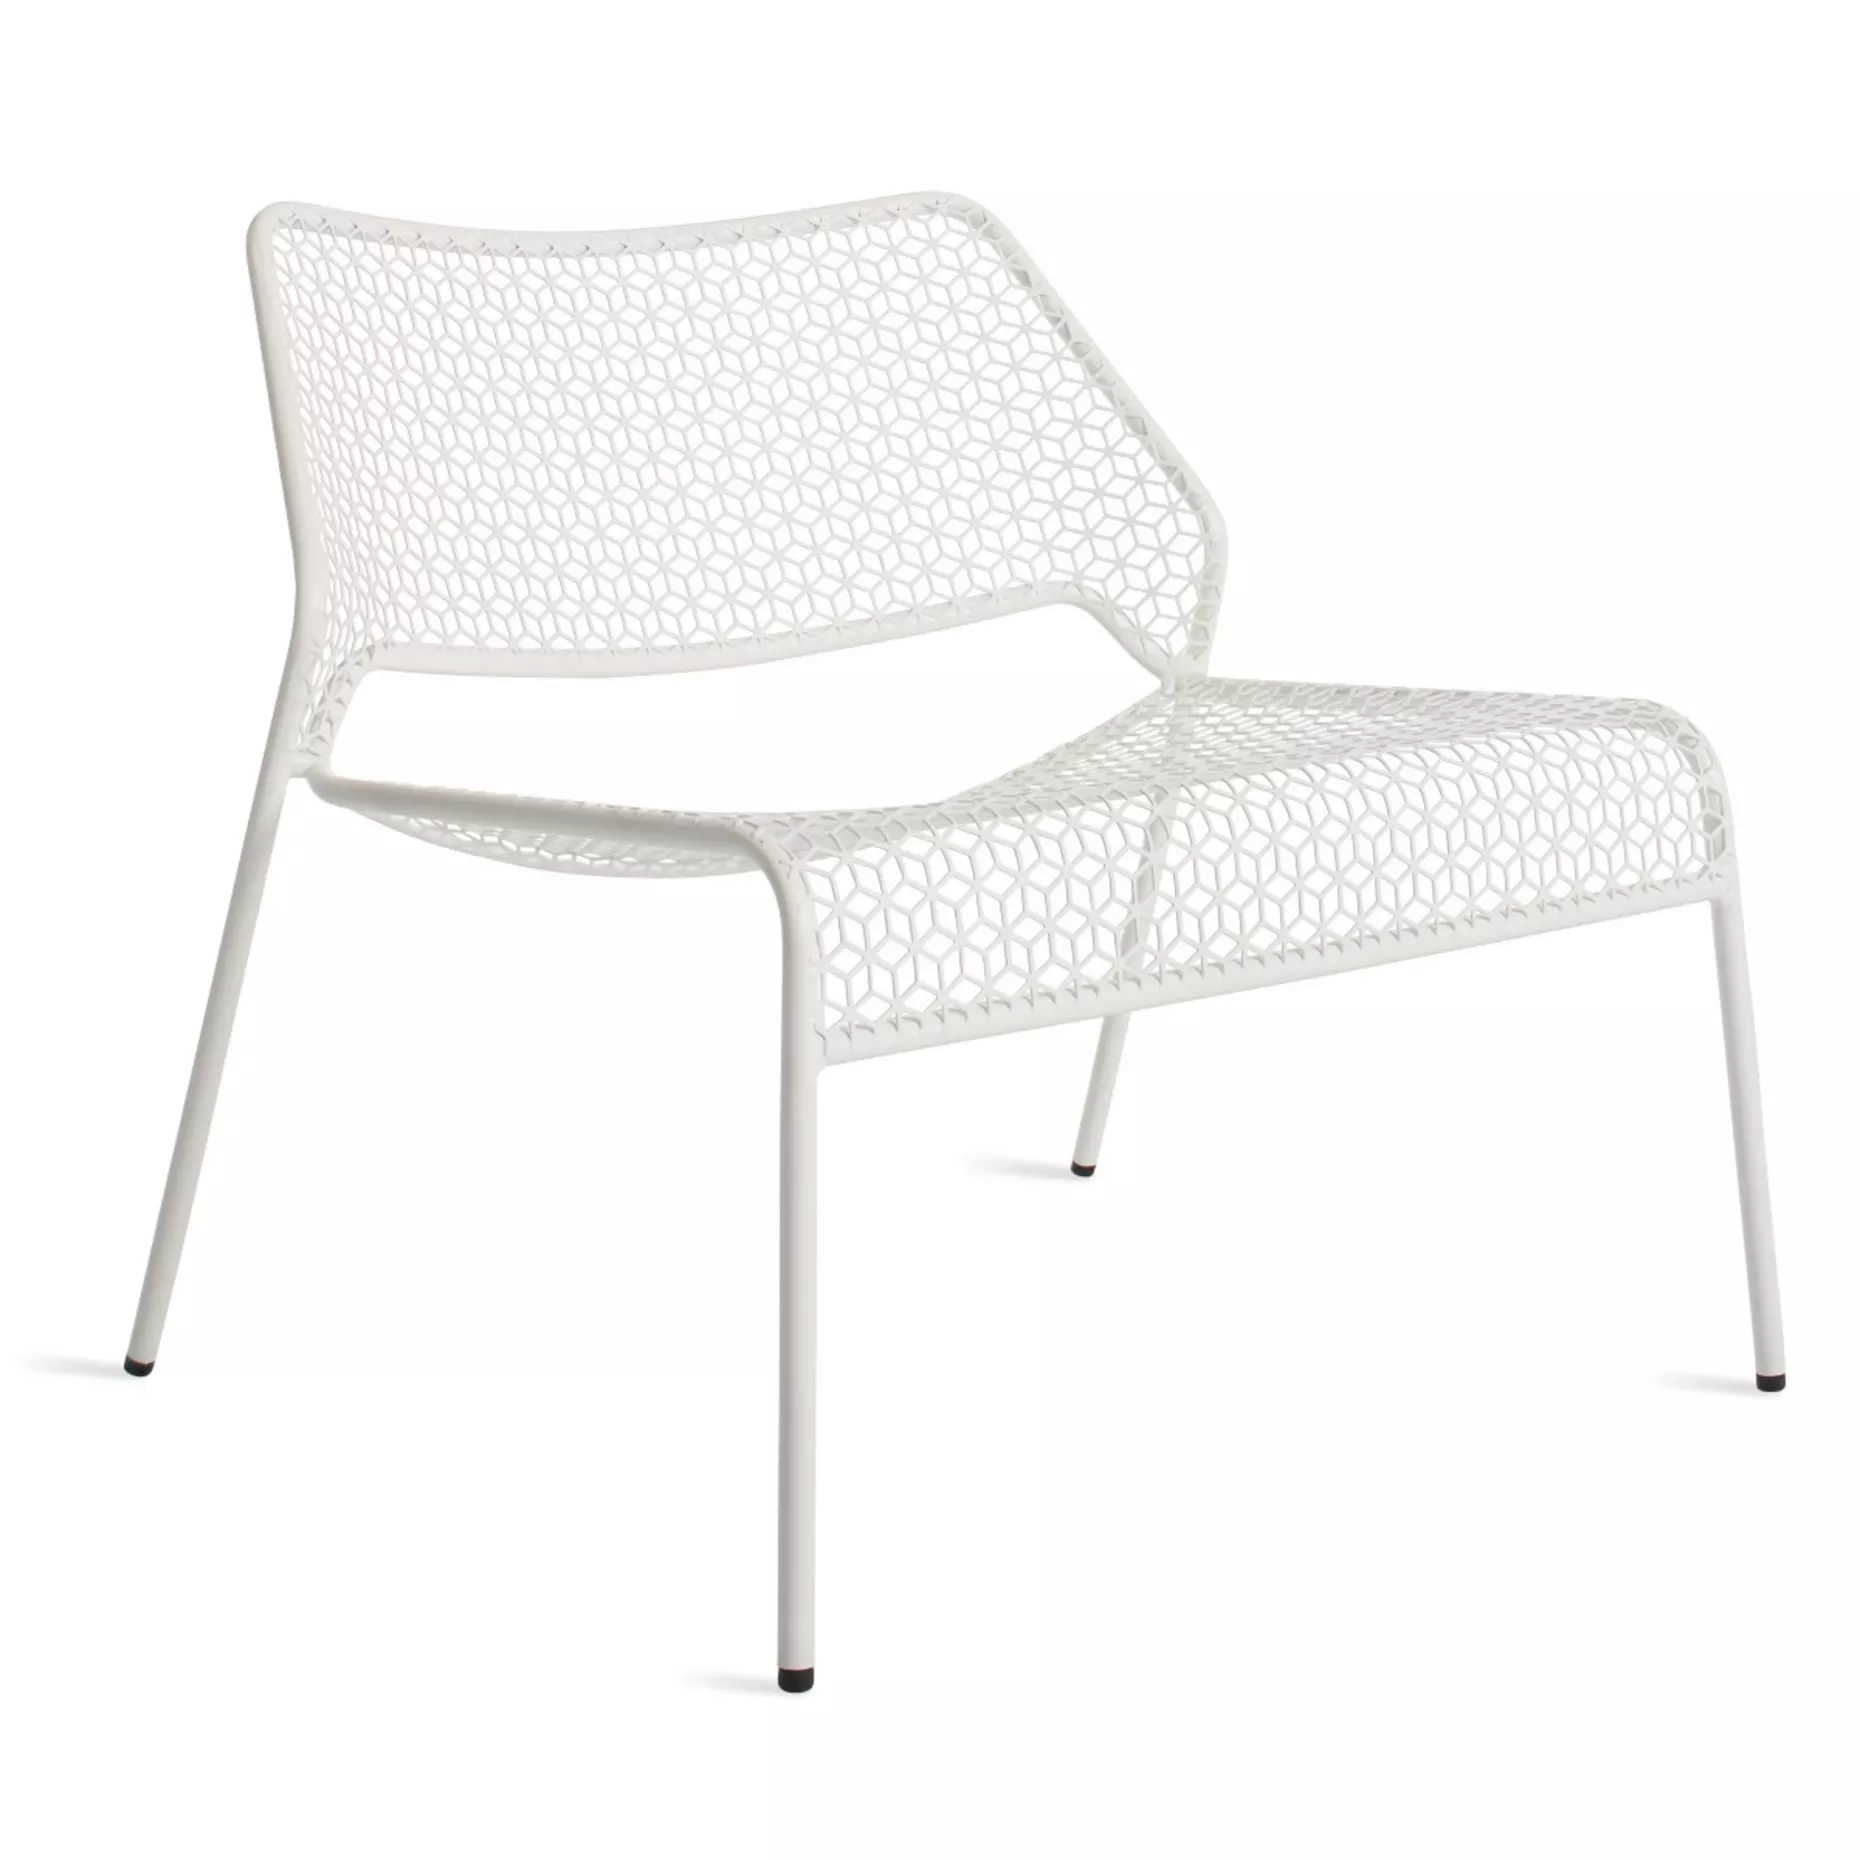 Hot Mesh Lounge Chair Natural Yellow White Dining Room Chairs Patio Lounge Chairs Wooden Dining Room Chairs